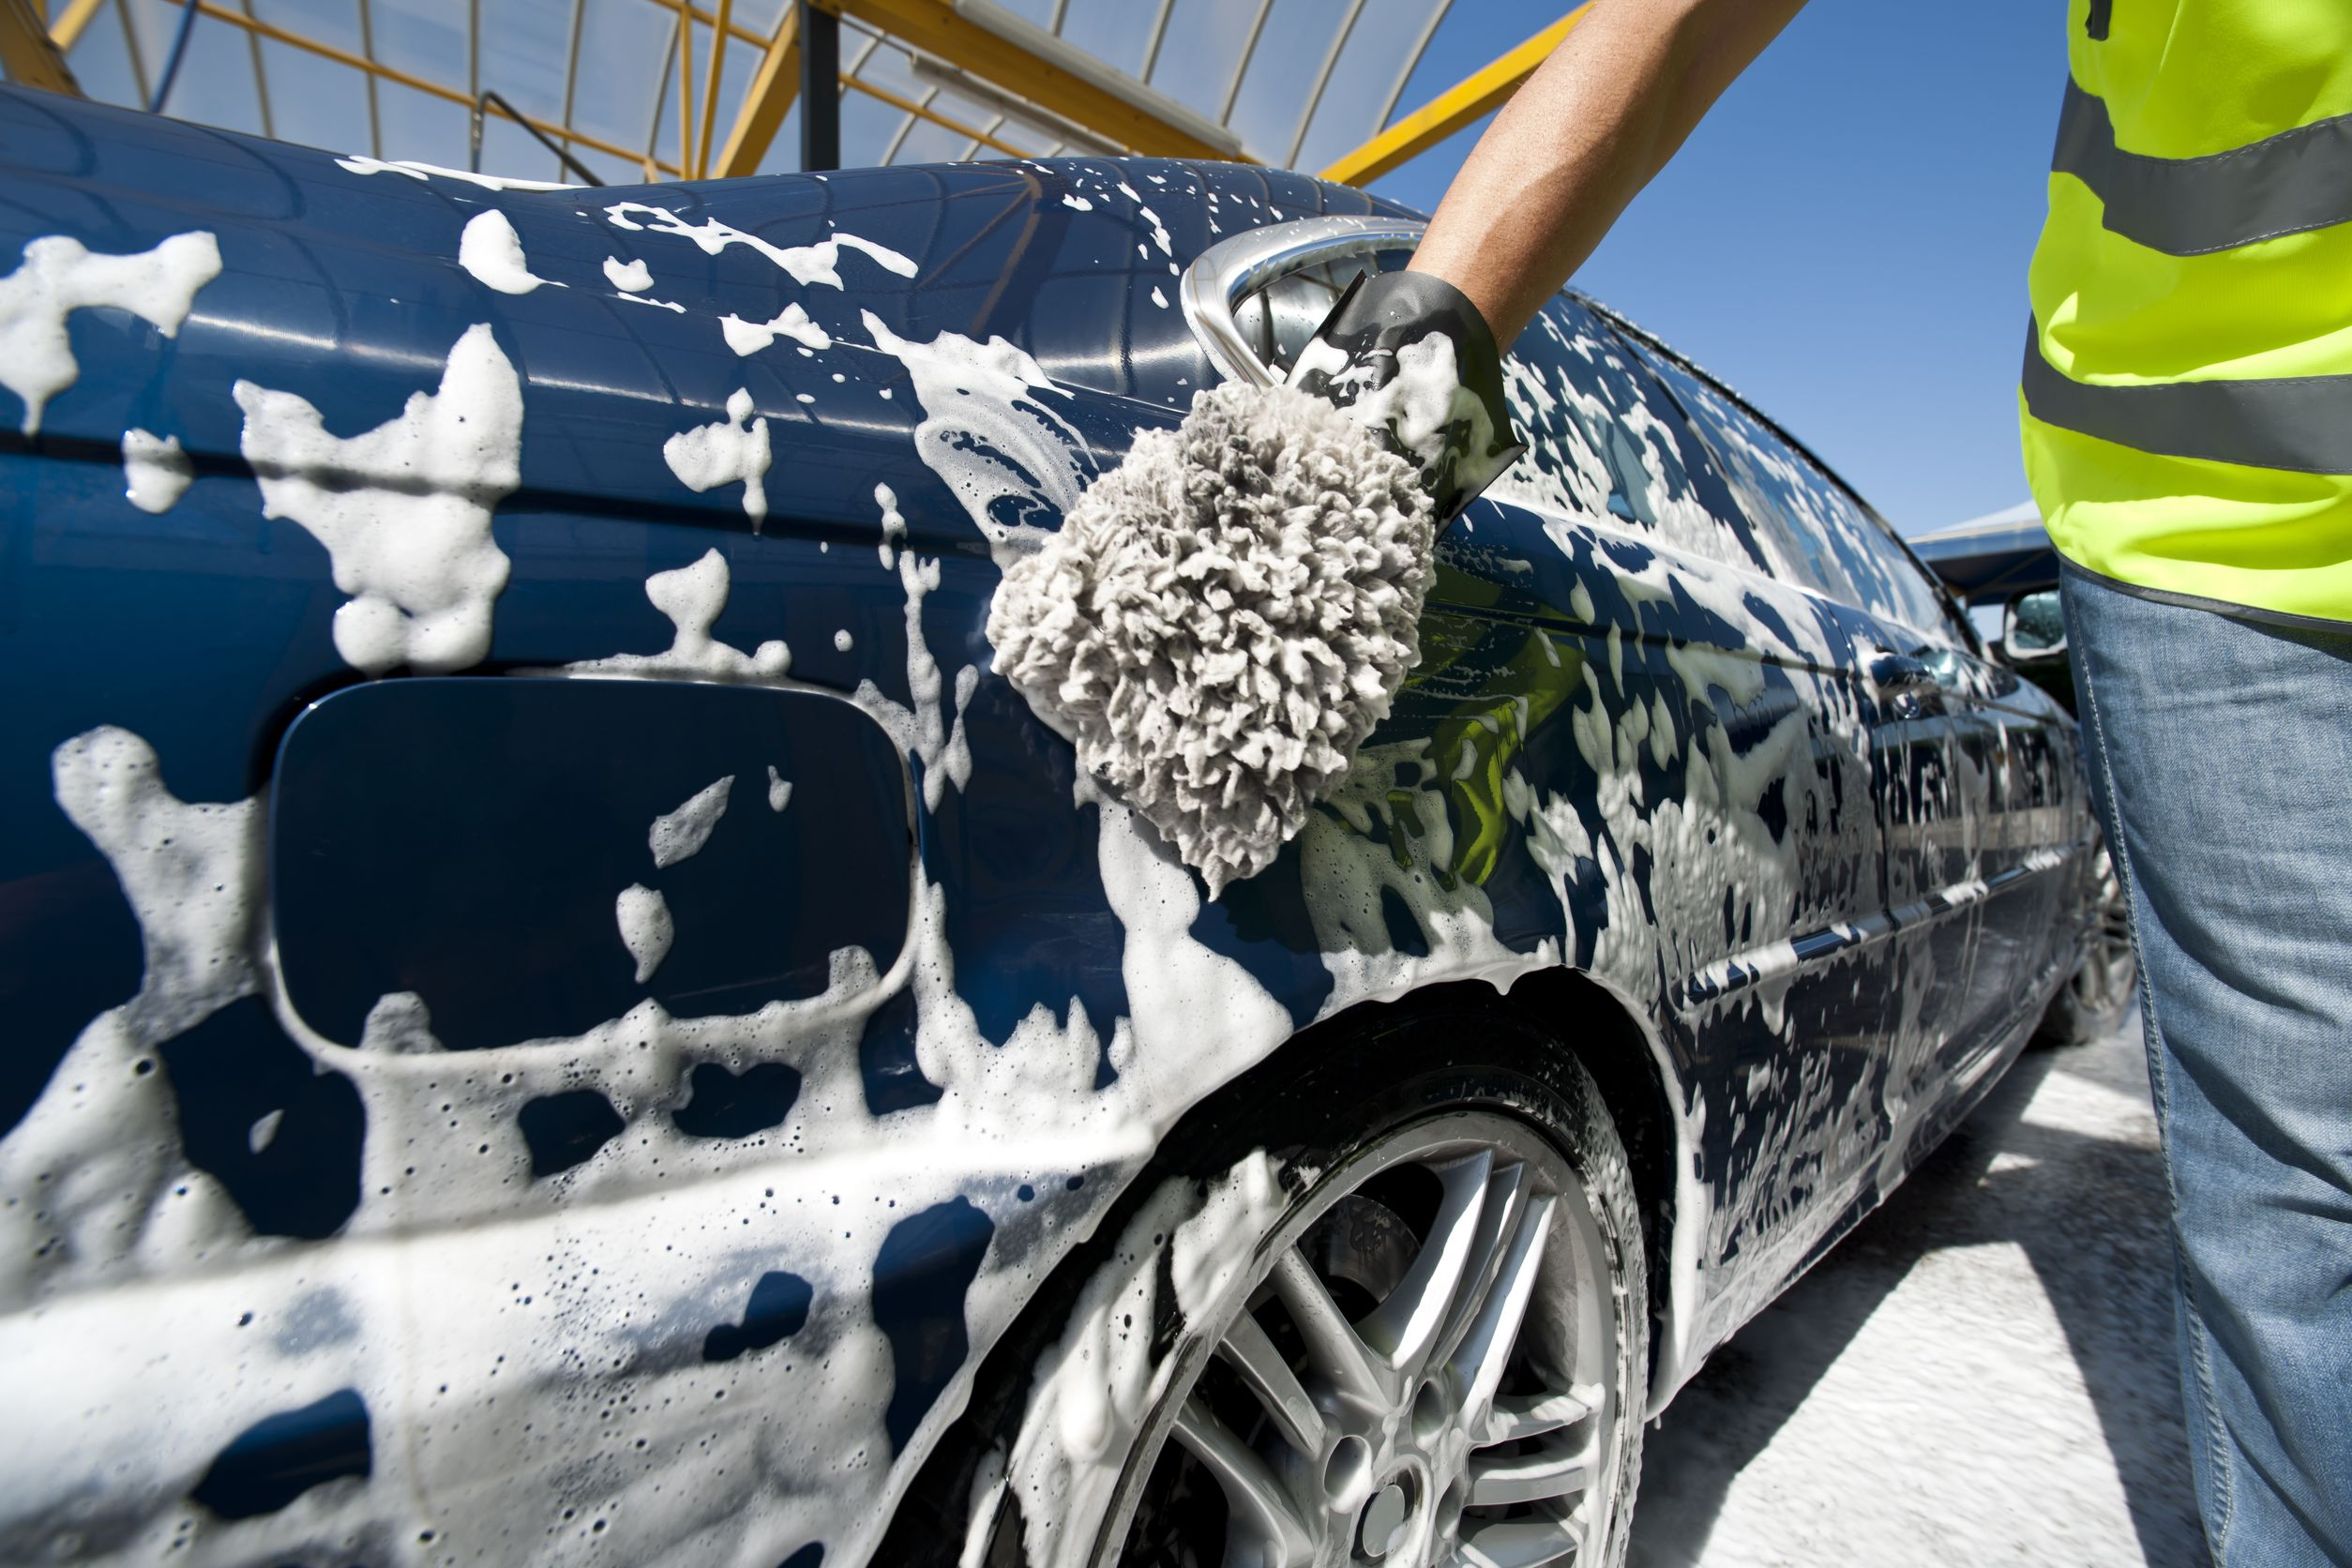 Full Car wash Services to Give Your Car a Brand New Look